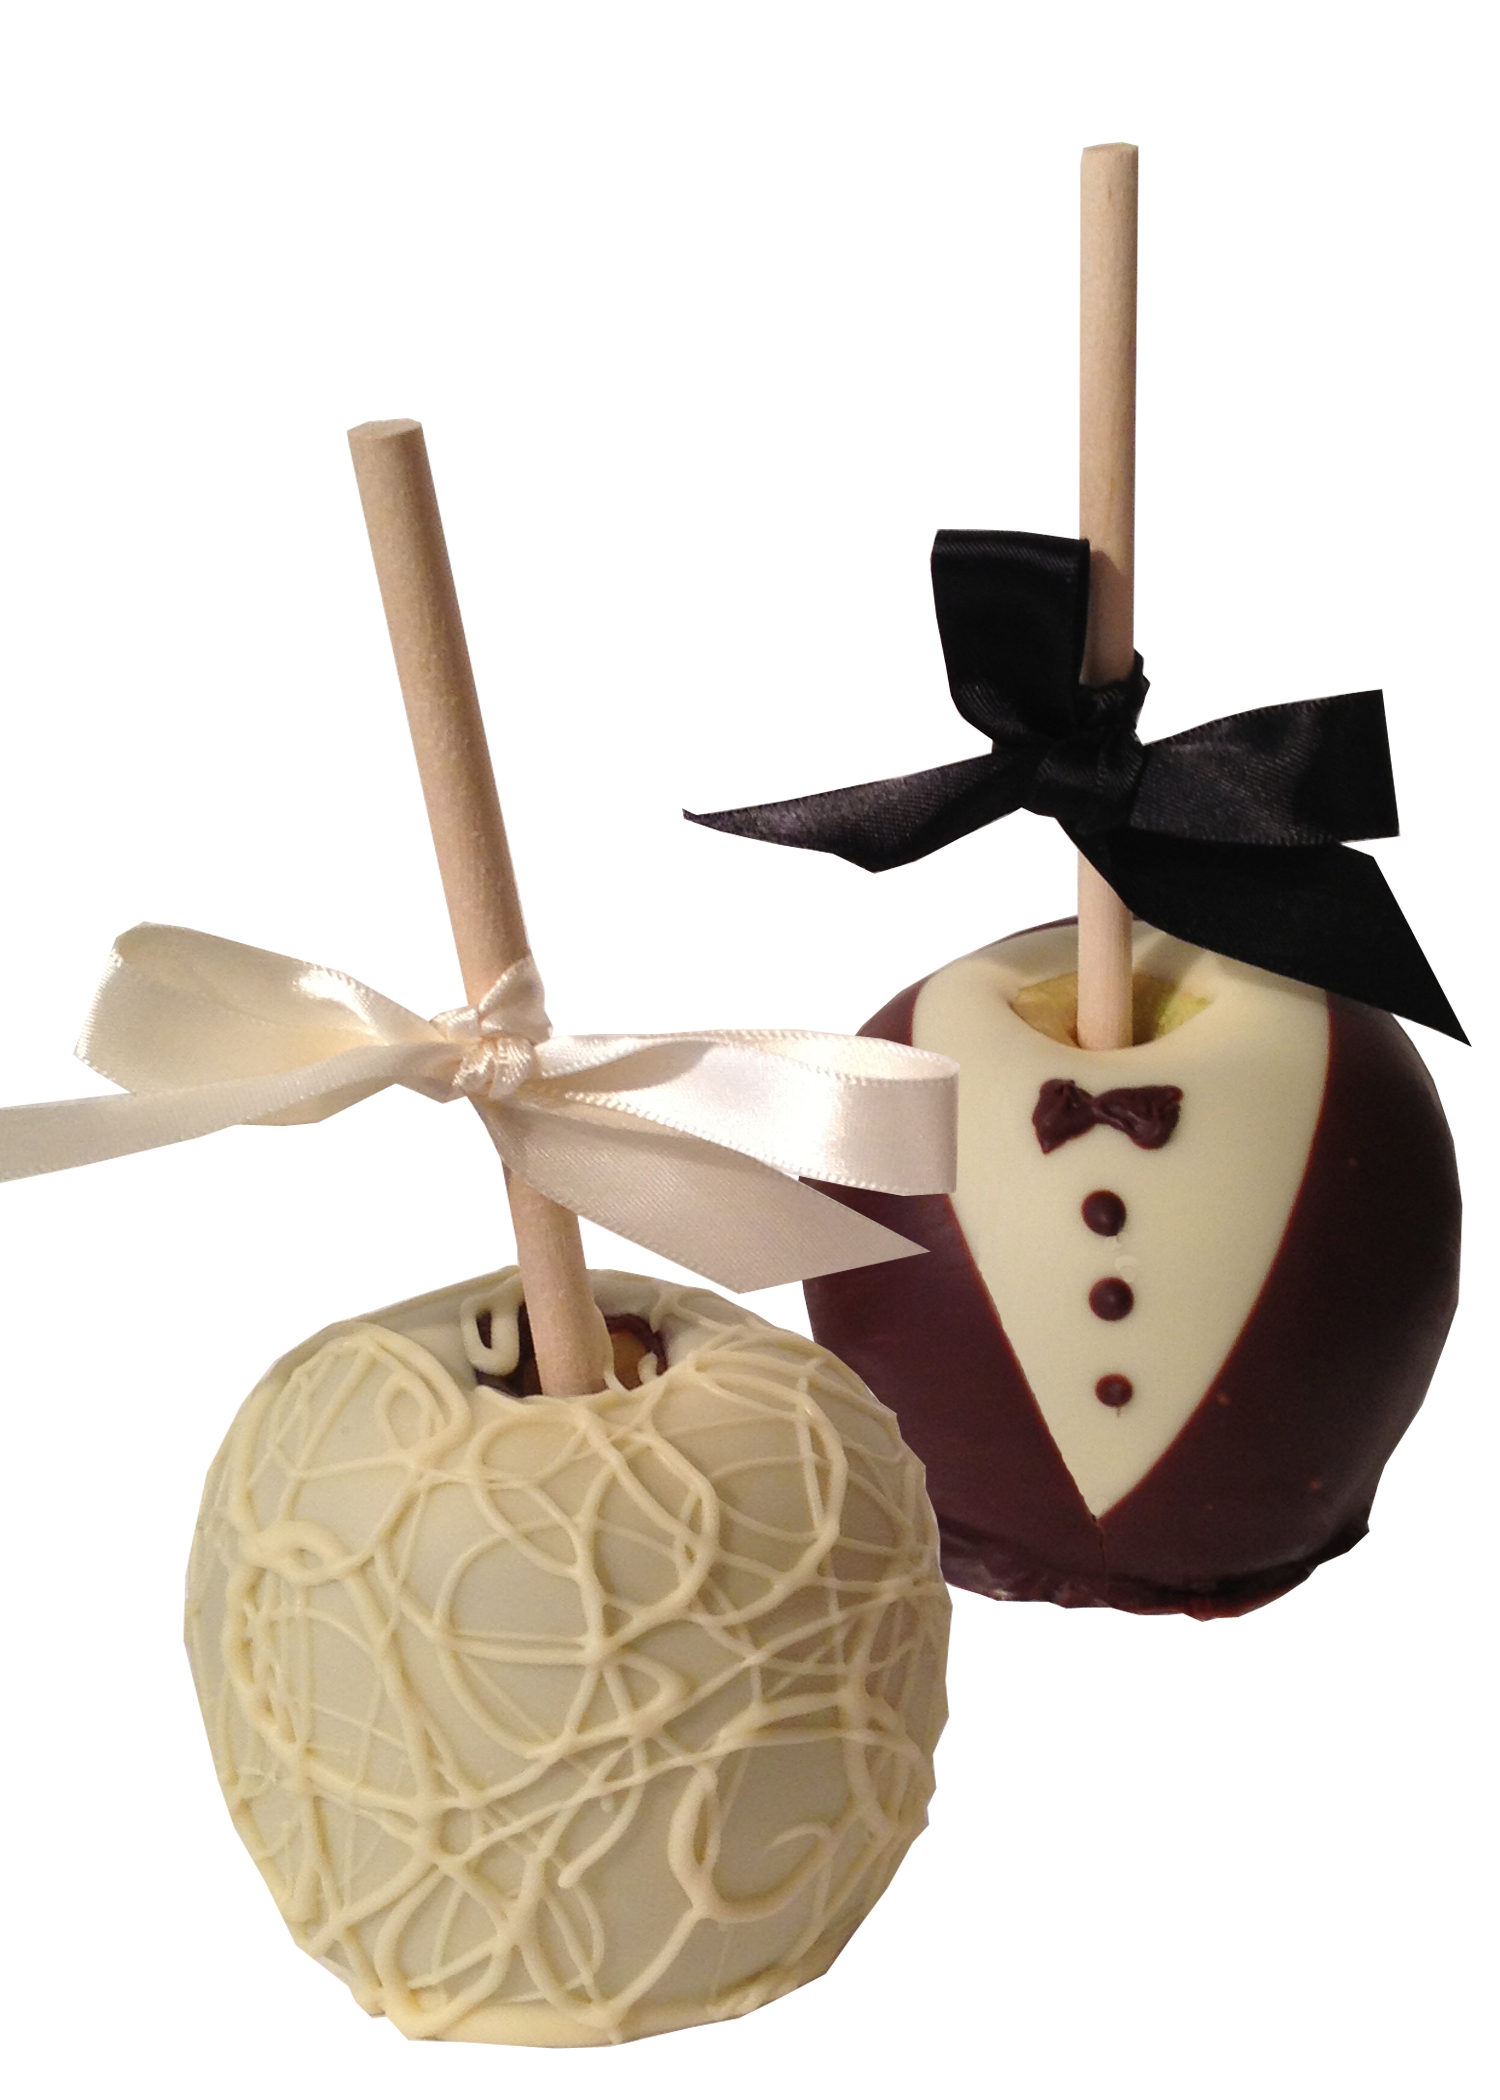 Gourmet Toffee Apples